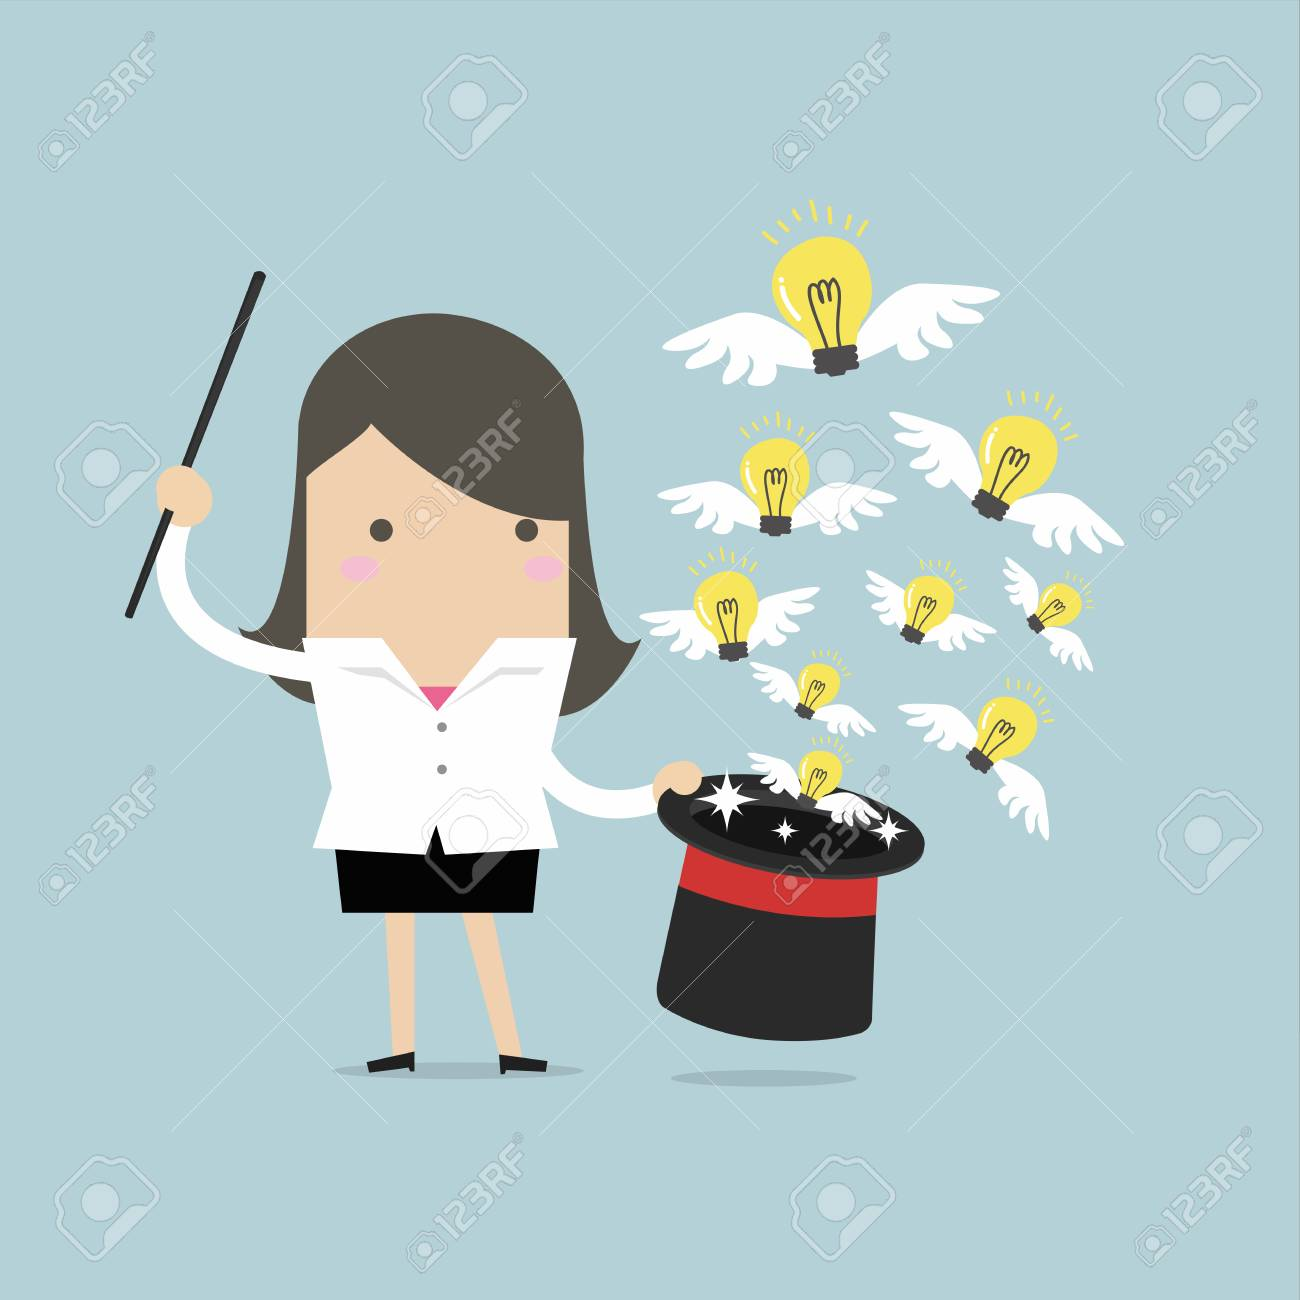 businesswoman holding a magic stick and spell casting idea bulbs